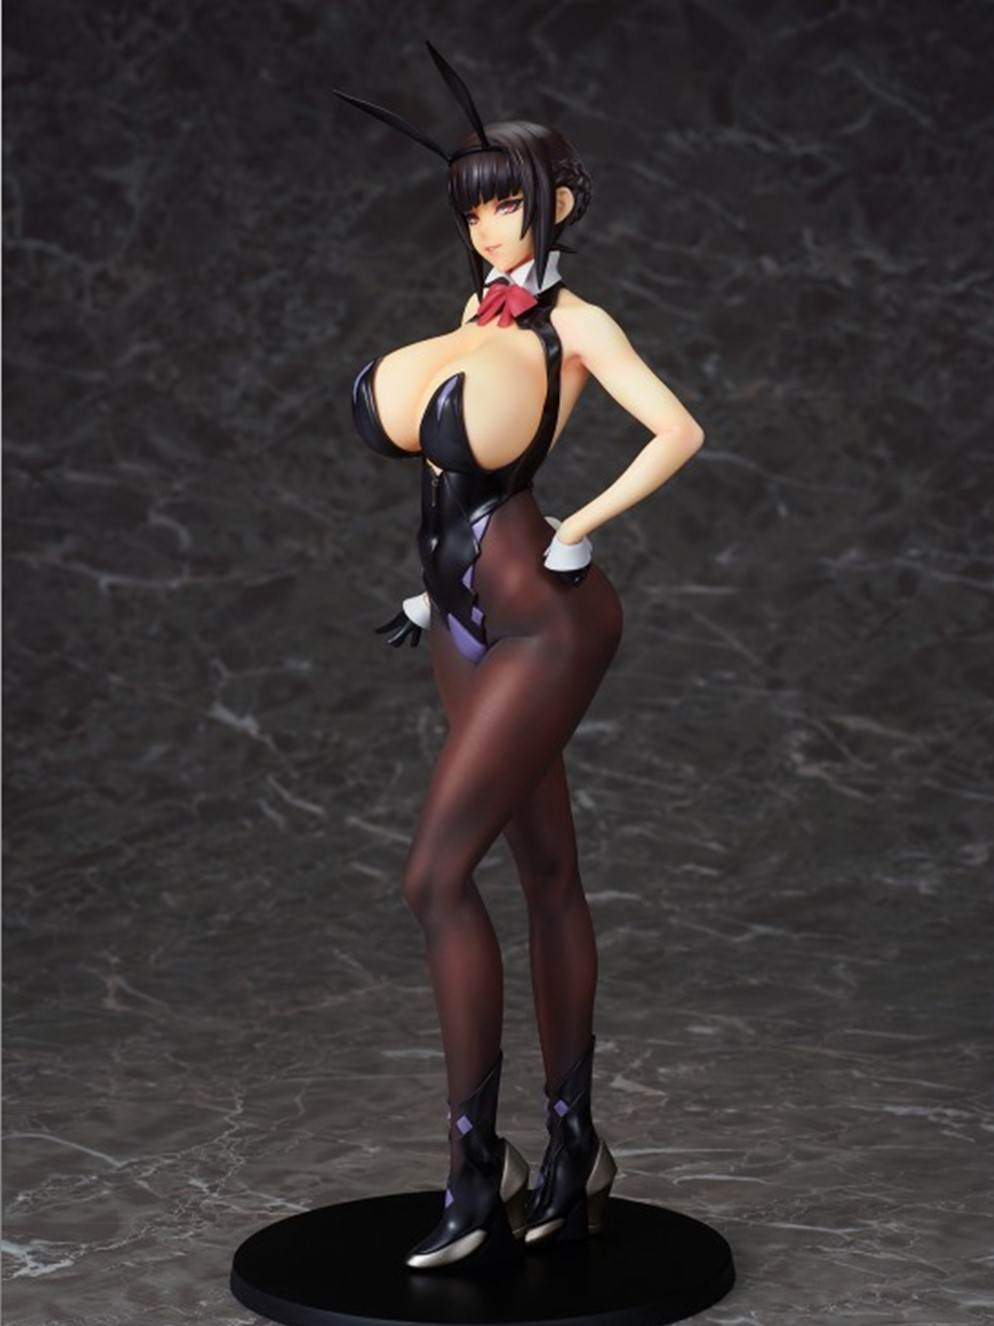 1/5 Scale Painted Anime <font><b>Sexy</b></font> BUNNY GIRL Izayoi Erika Soft Chest Adult Dolls R18+ PVC Dress Up <font><b>Action</b></font> <font><b>Figure</b></font> Model <font><b>Toy</b></font> BOX D684 image